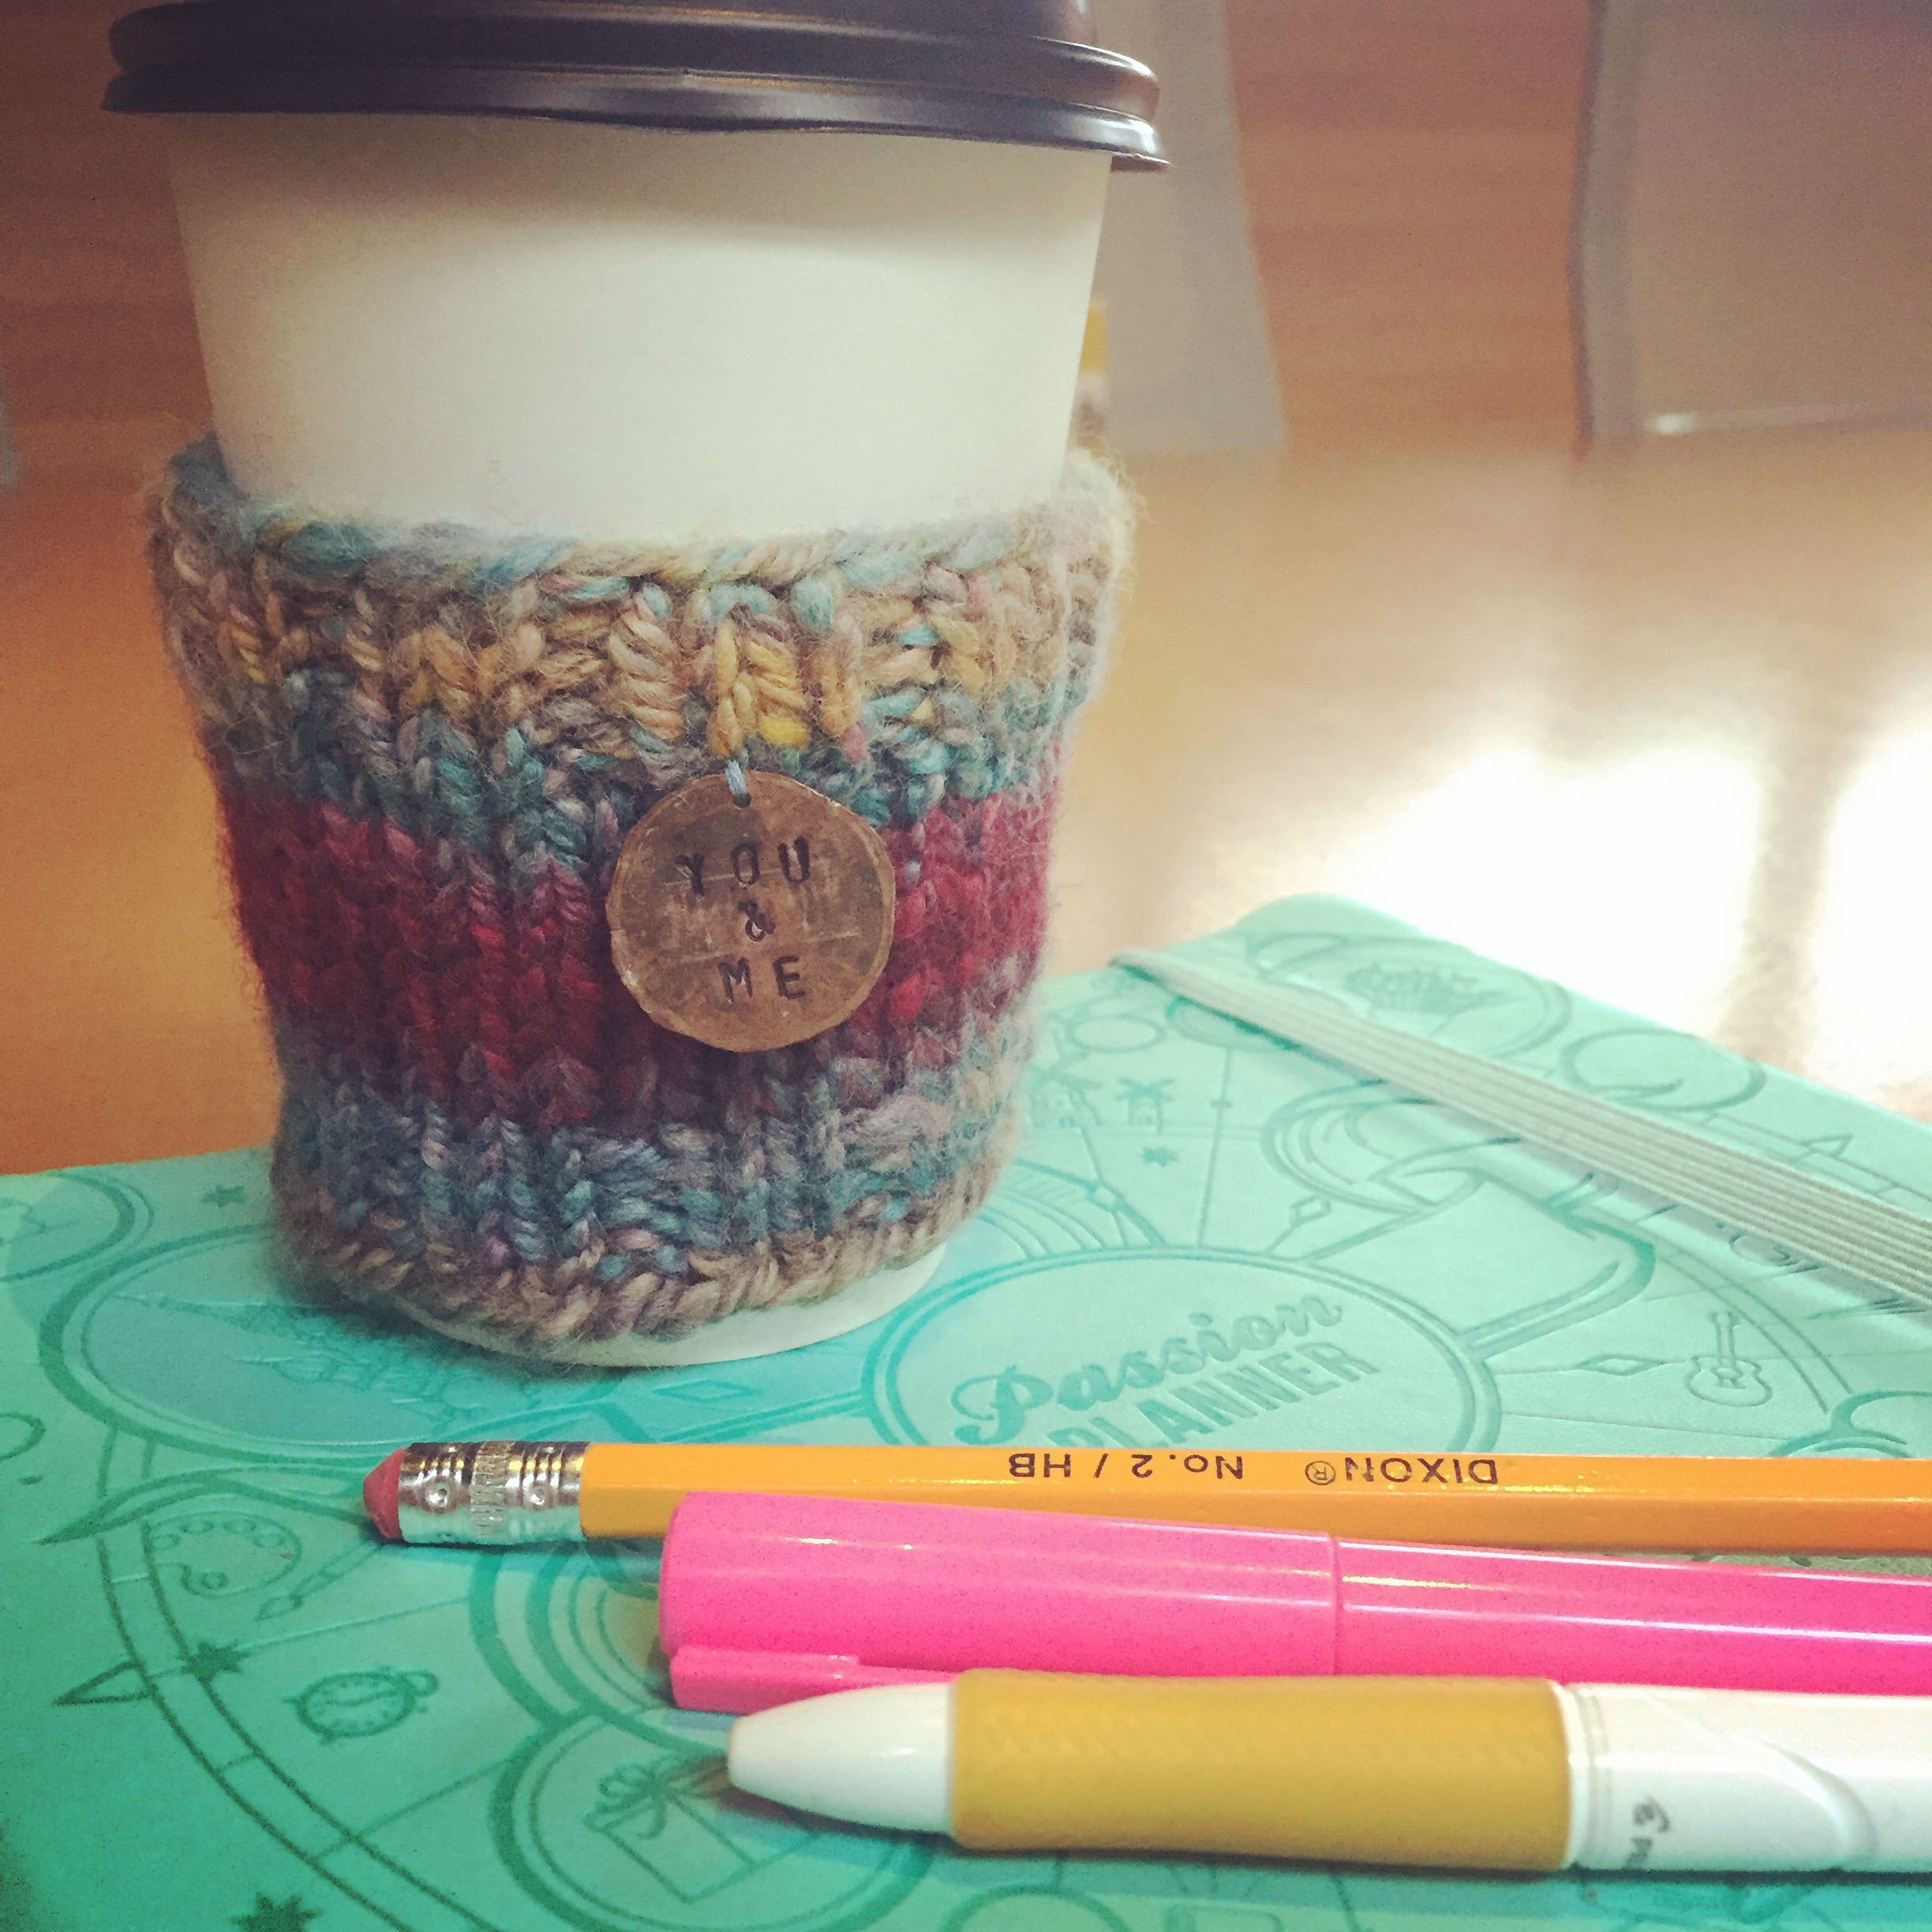 Image of a coffee cup with a planner and pens